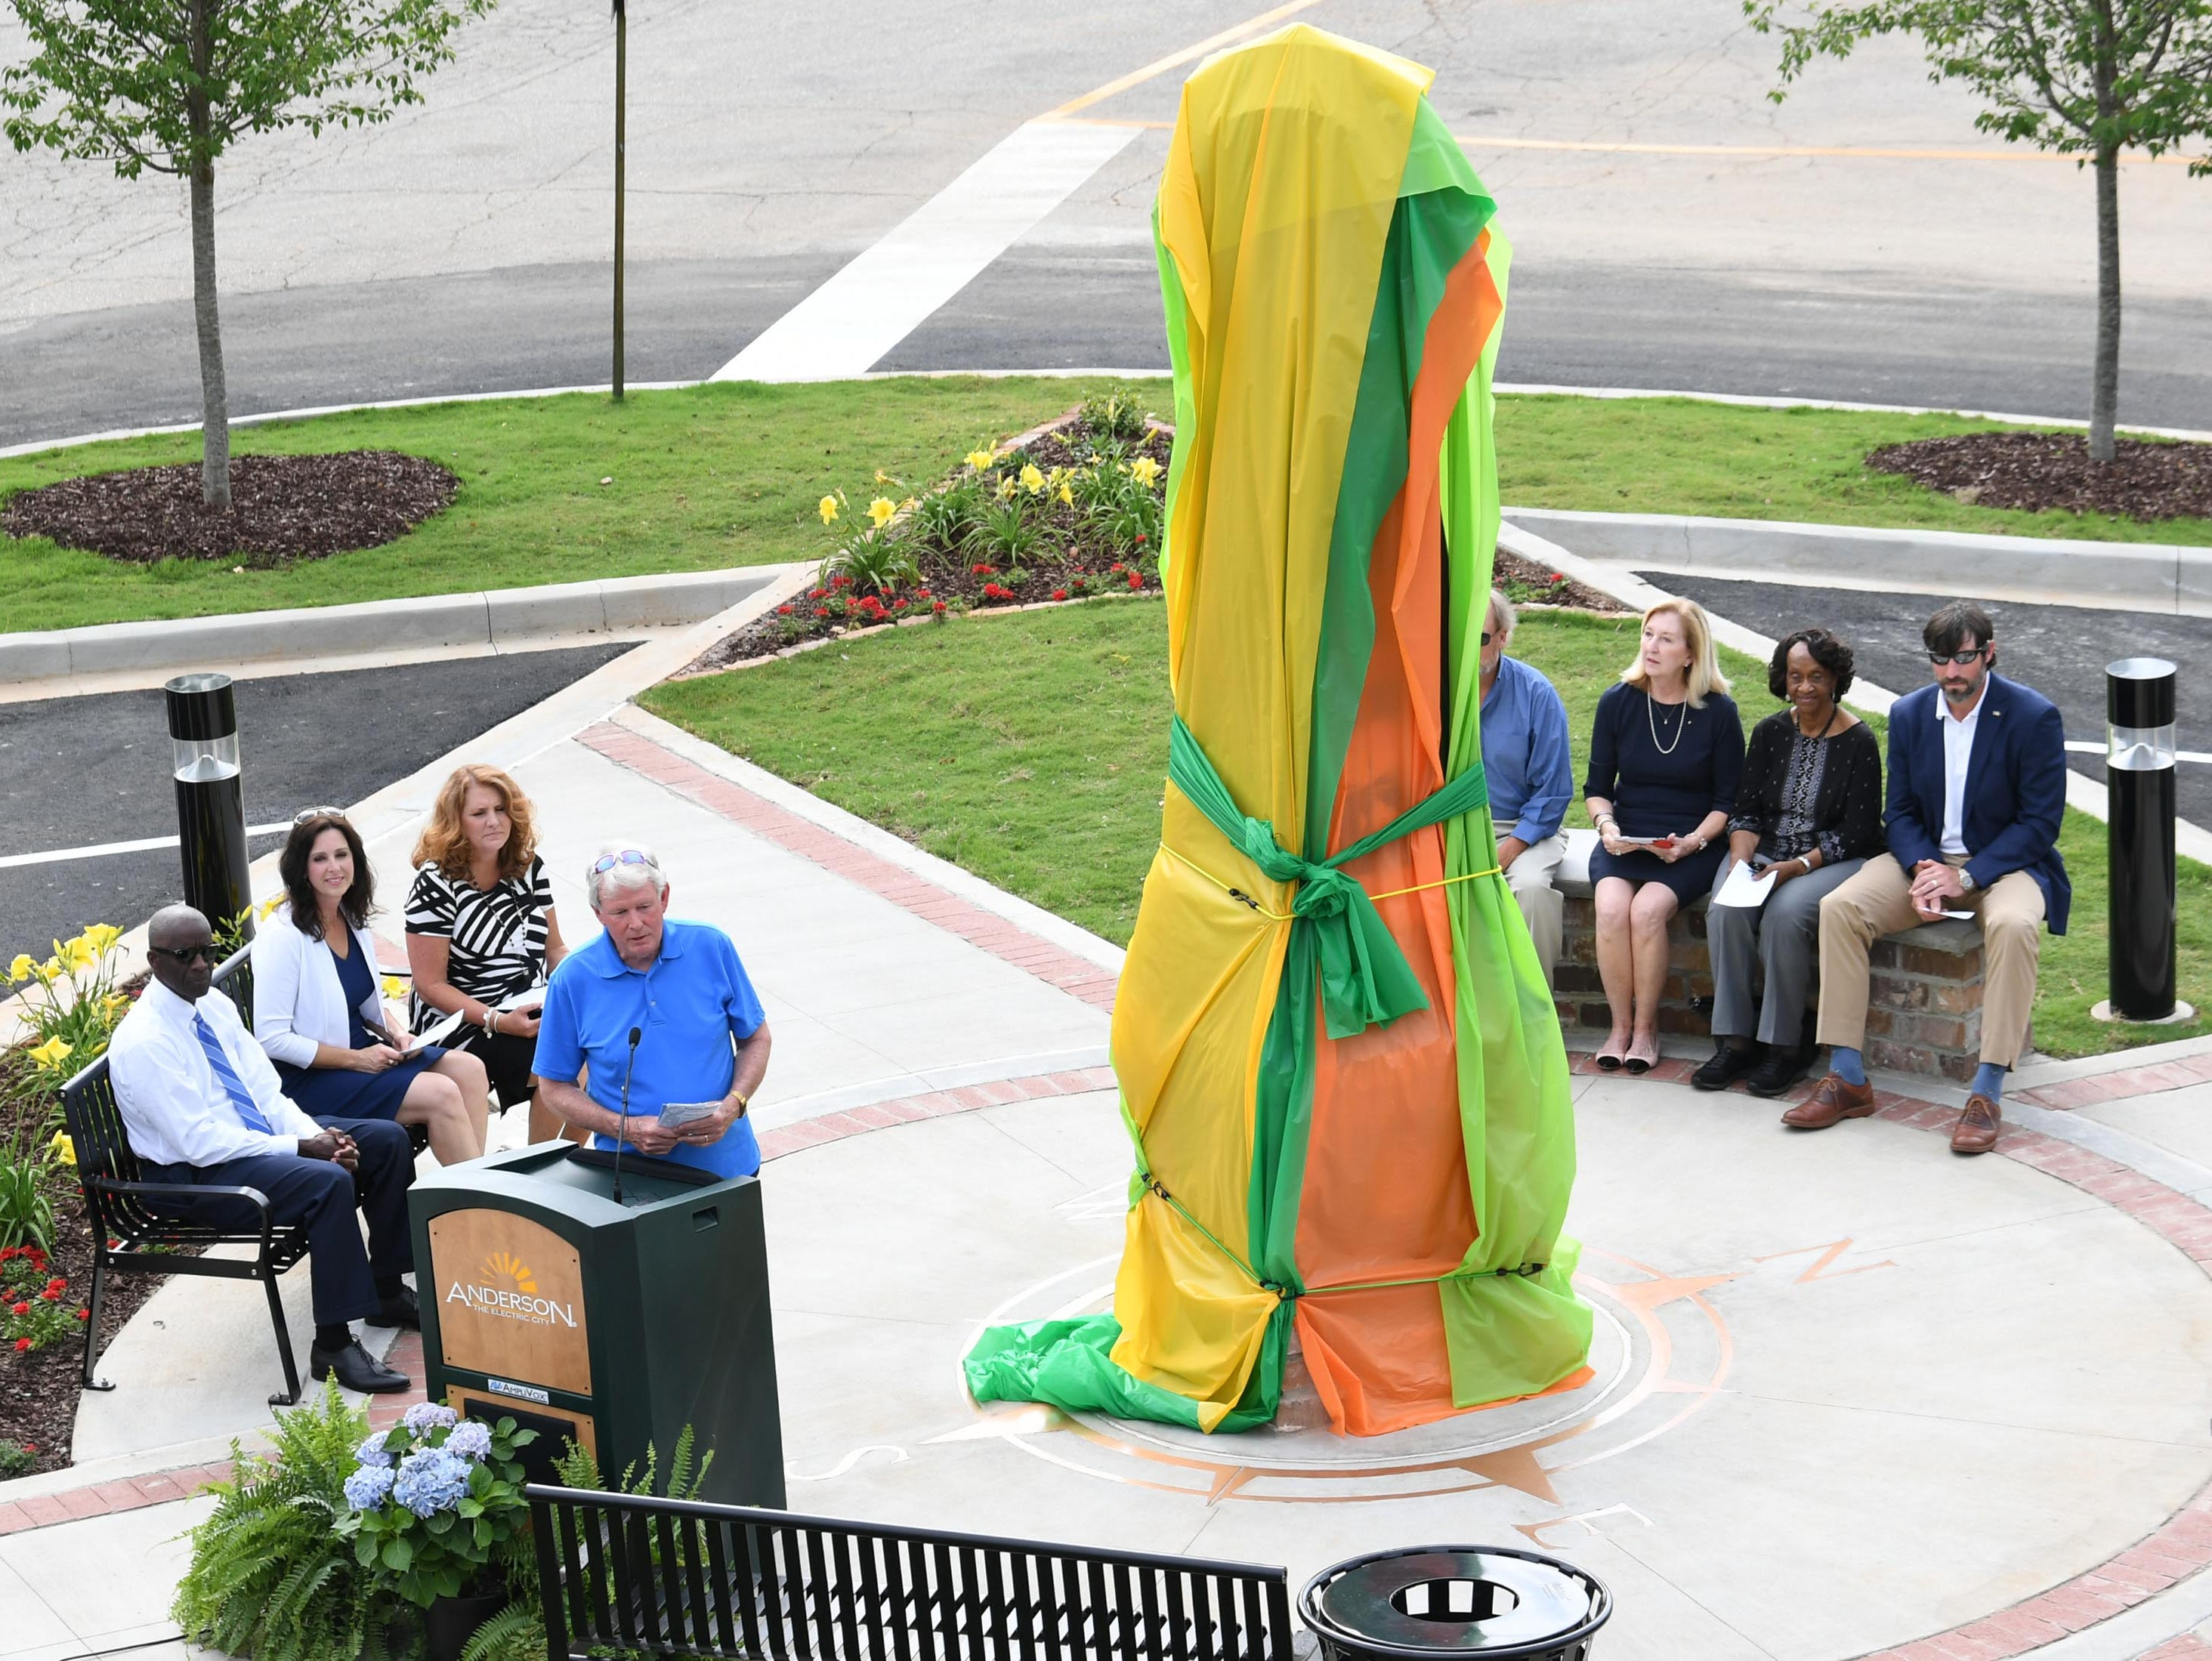 John Miller, Jr. speaks before helping unveil the Under the bridge project called Textile Point in downtown Anderson Thursday, May 9, 2019. Scott Foster of Anderson designed the monument honoring years of textile mills in Anderson, with support partners from To Benefit Anderson, South Carolina Heritage Corridor, the Rotary Club of Anderson, and the City of Anderson.